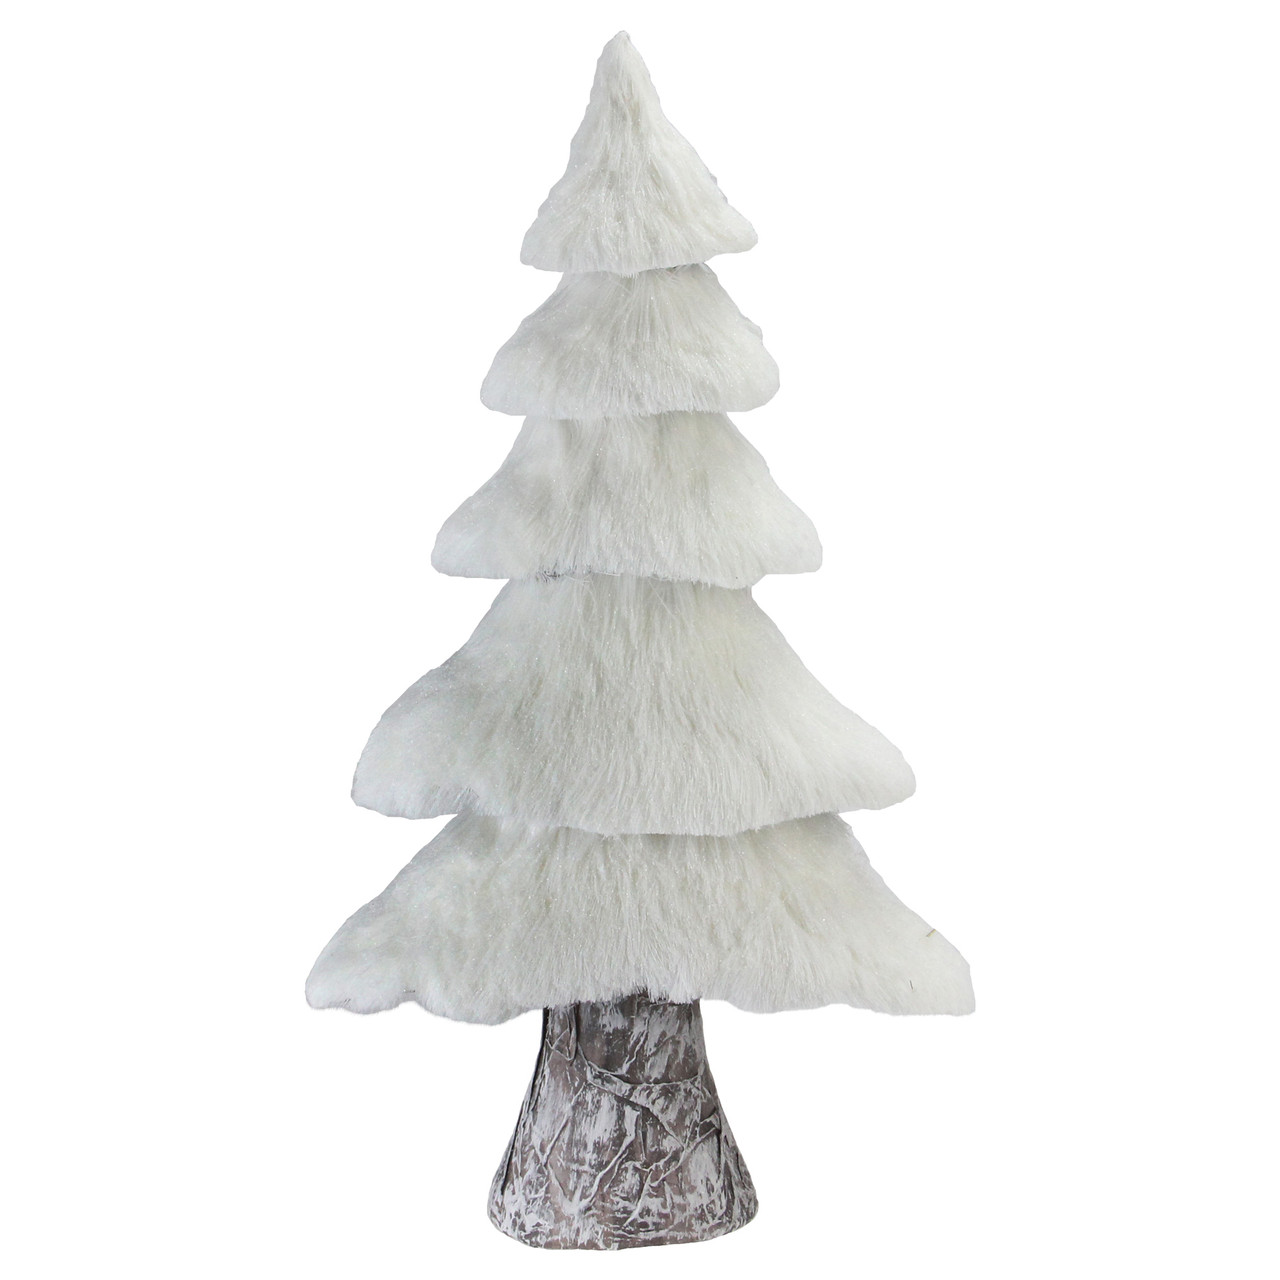 17 3 White Rustic Birch Faux Fur Tree With Snow Canopy Tabletop Christmas Decor Christmas Central